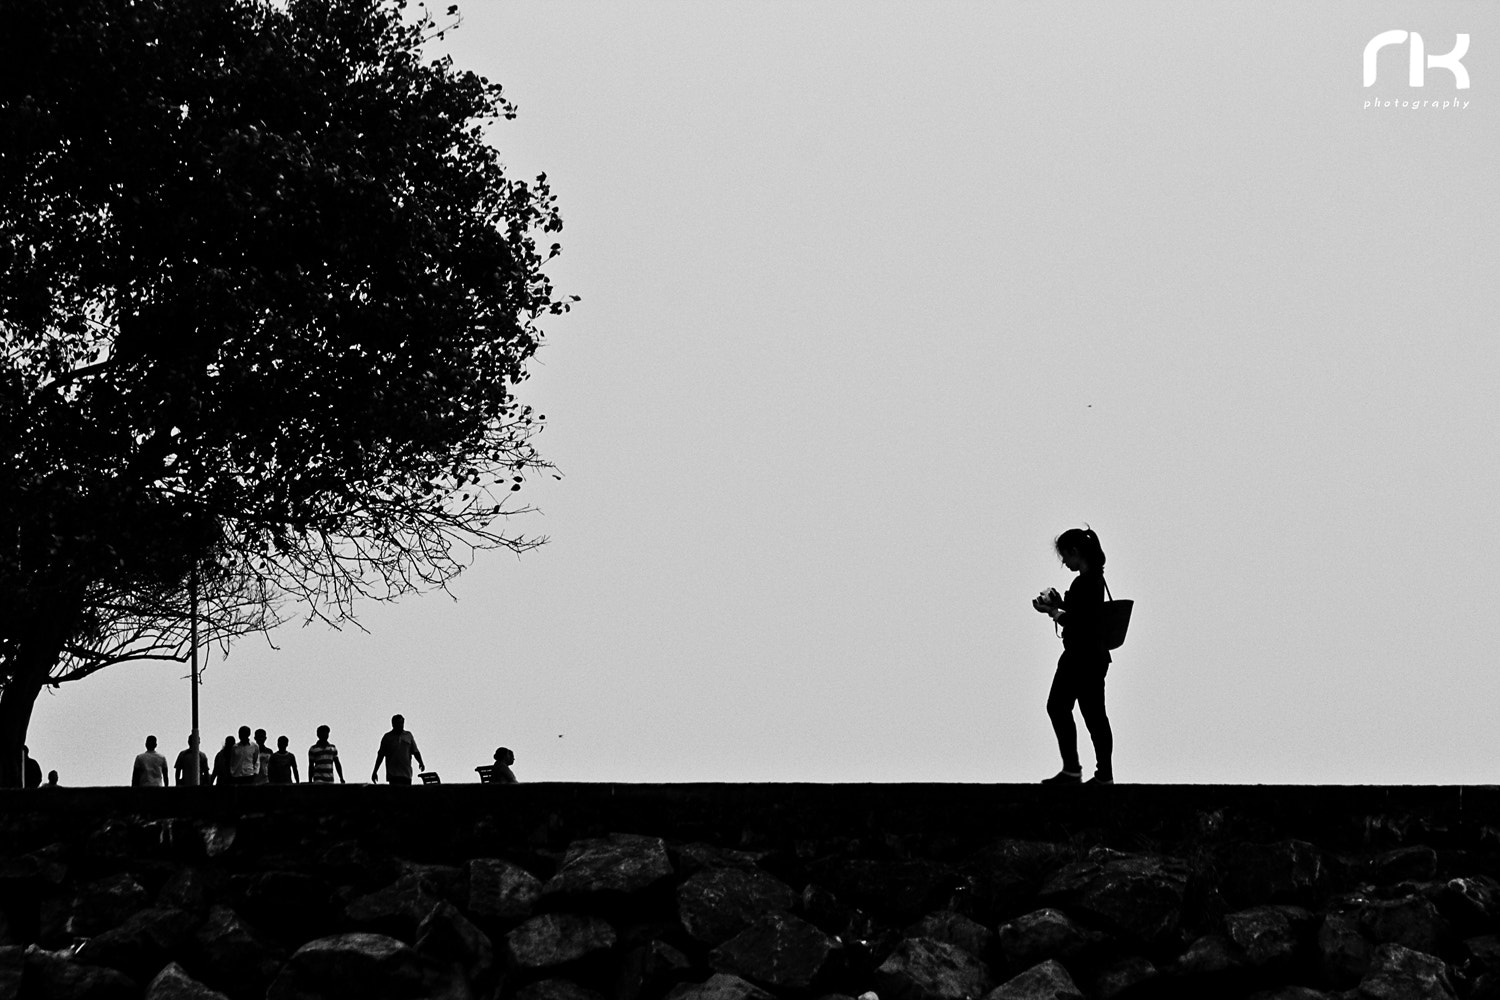 Photograph Silhouette by Nithesh Kanth on 500px